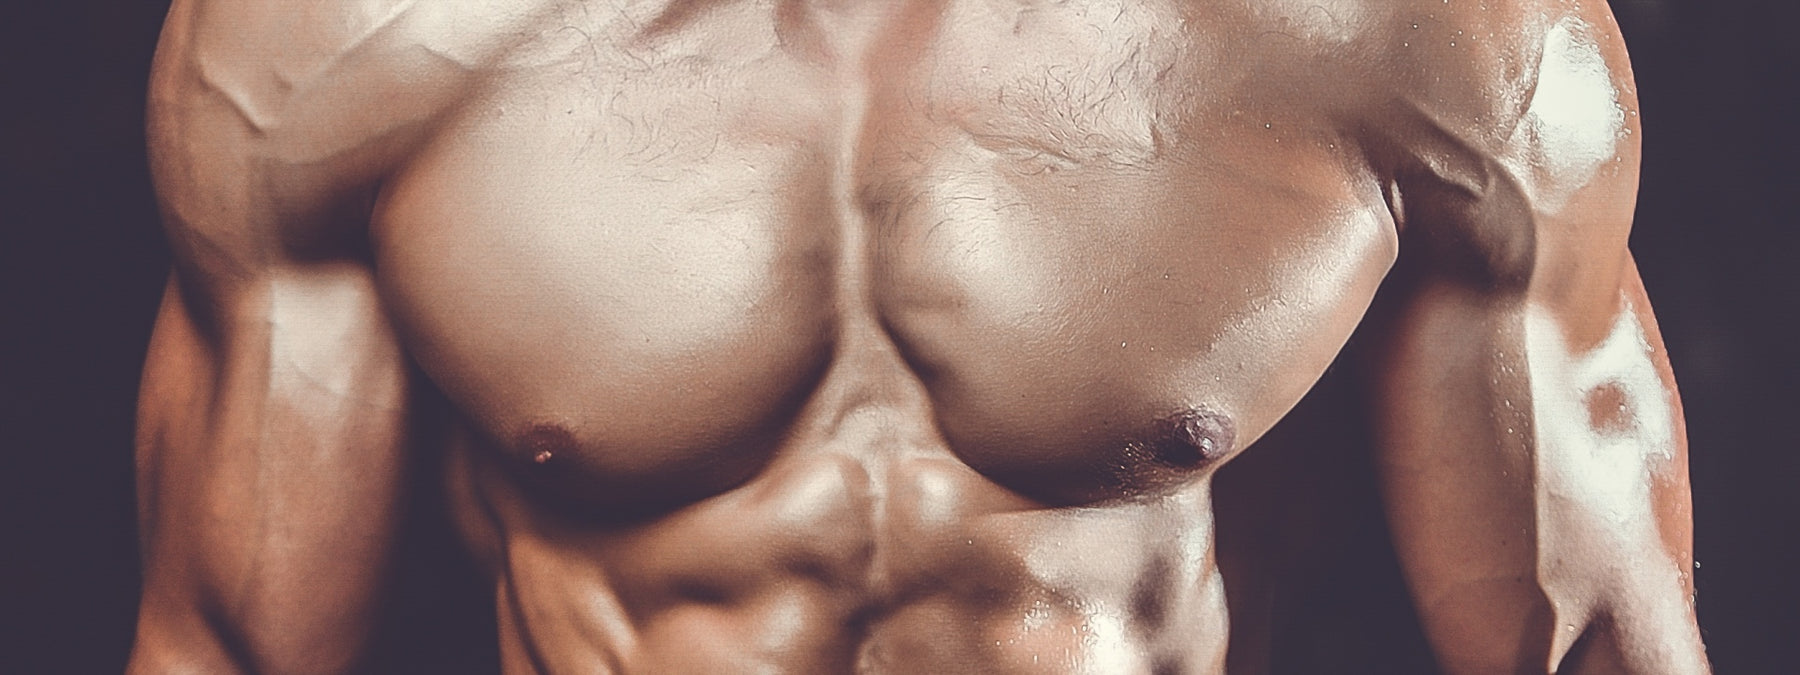 3 Best Chest Workouts For Pecs of Steel